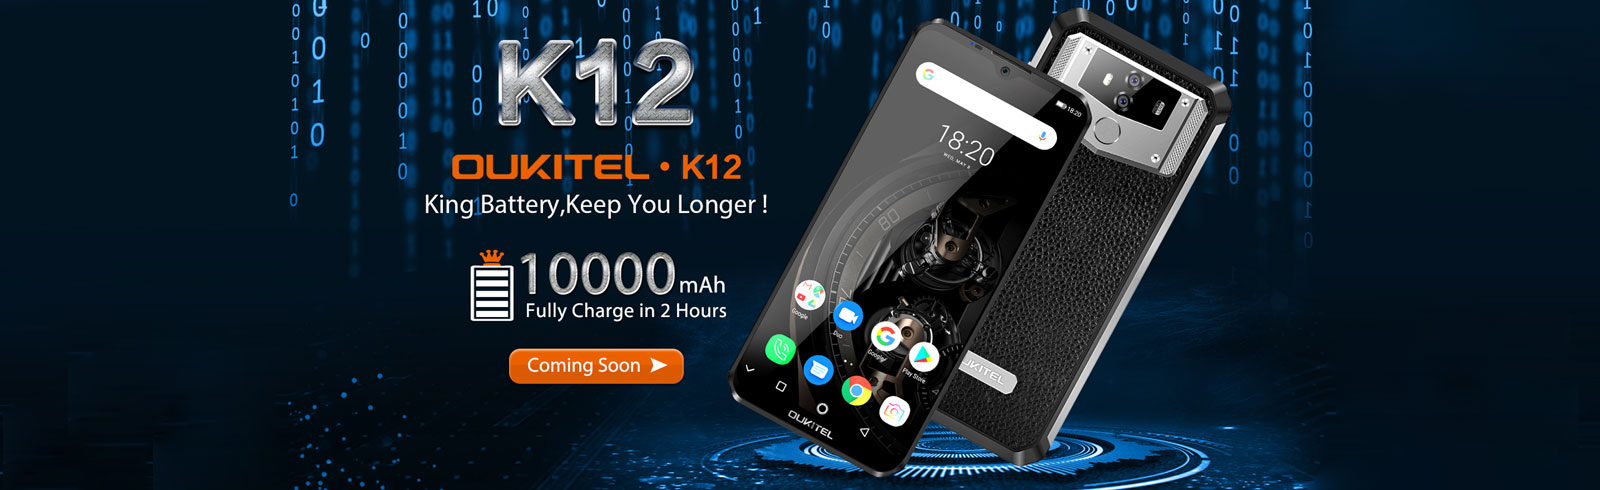 Oukitel K12 official specifications are confirmed